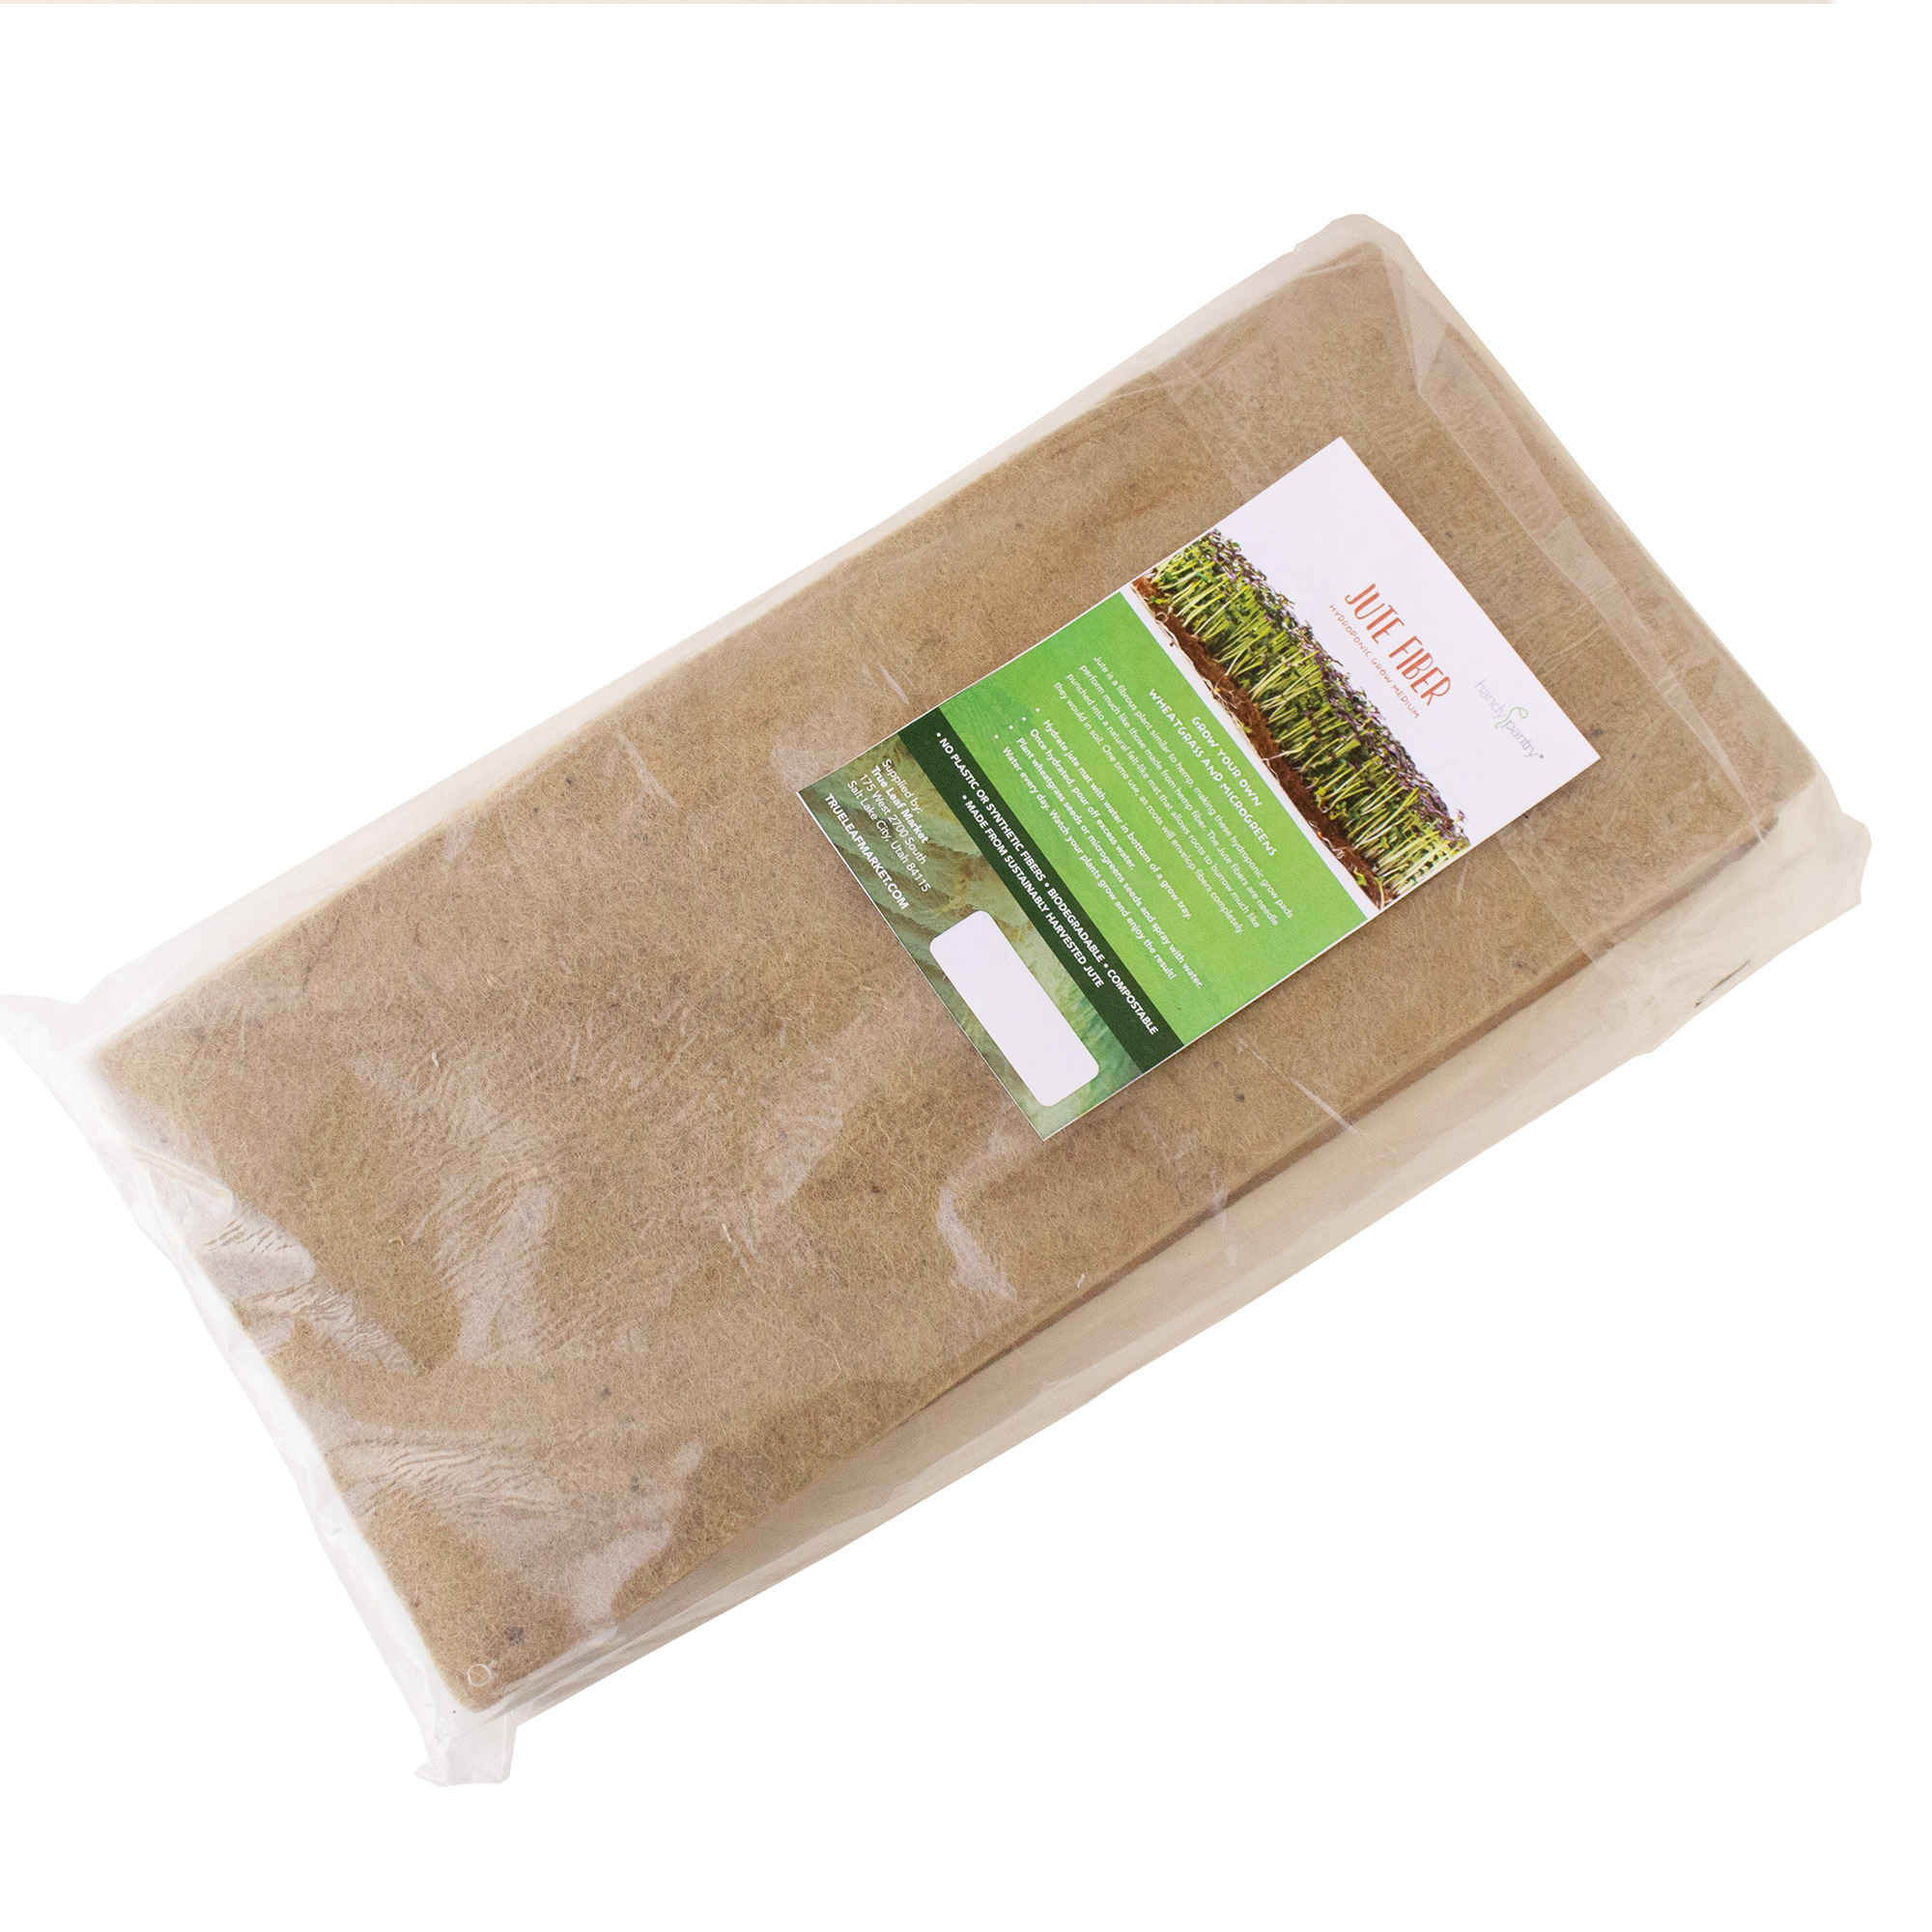 Pro Micro Jute Microgreens Grow Mats by Handy Pantry ...